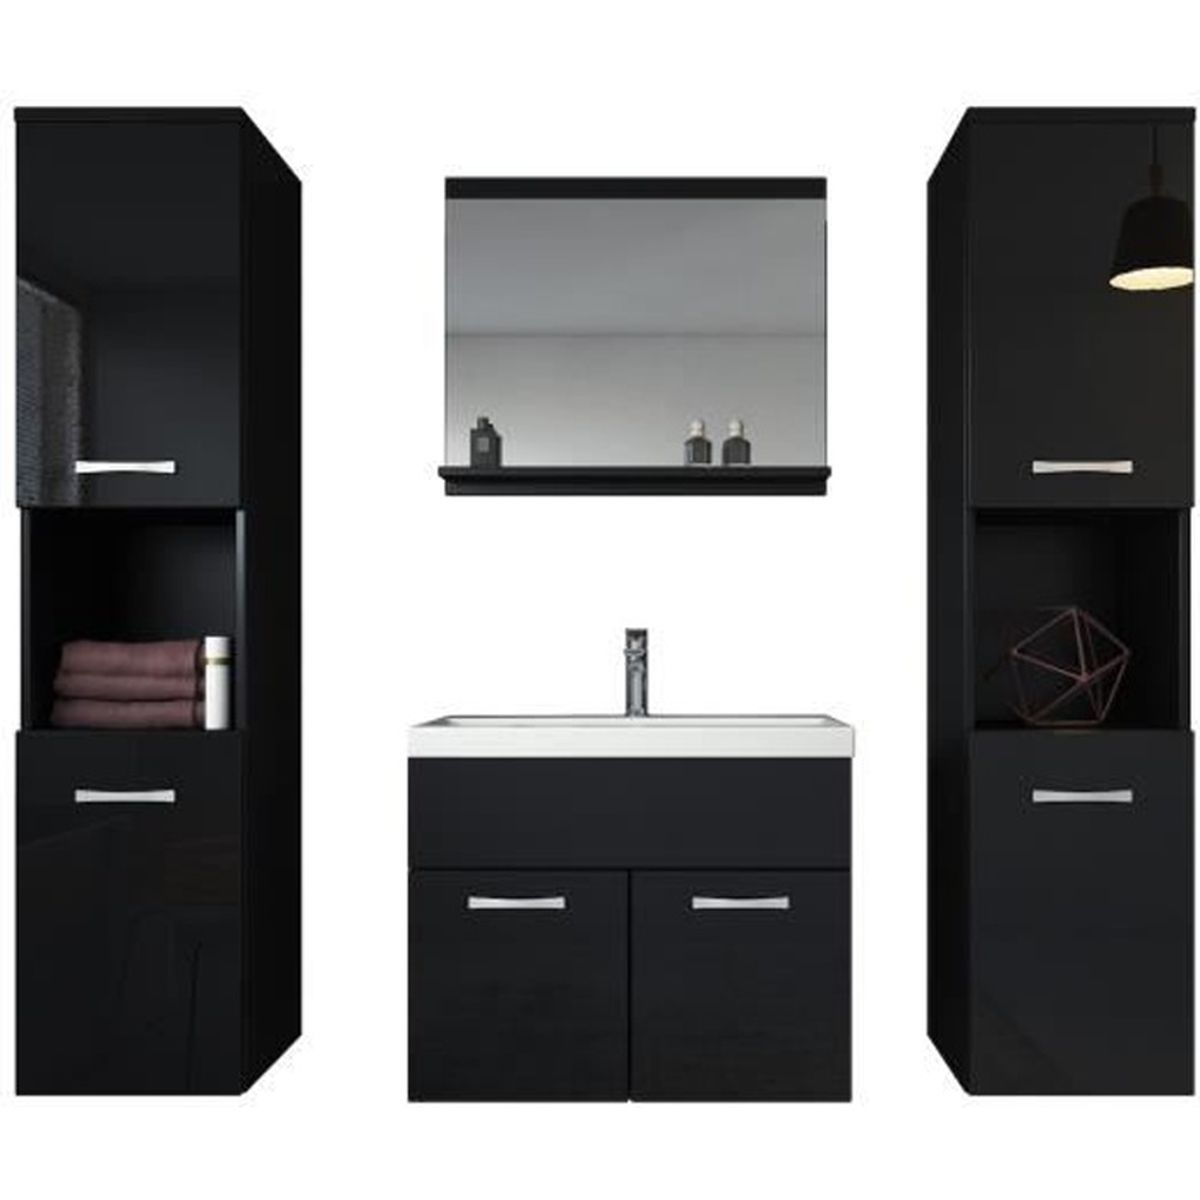 salle de bain compl te achat vente salle de bain. Black Bedroom Furniture Sets. Home Design Ideas